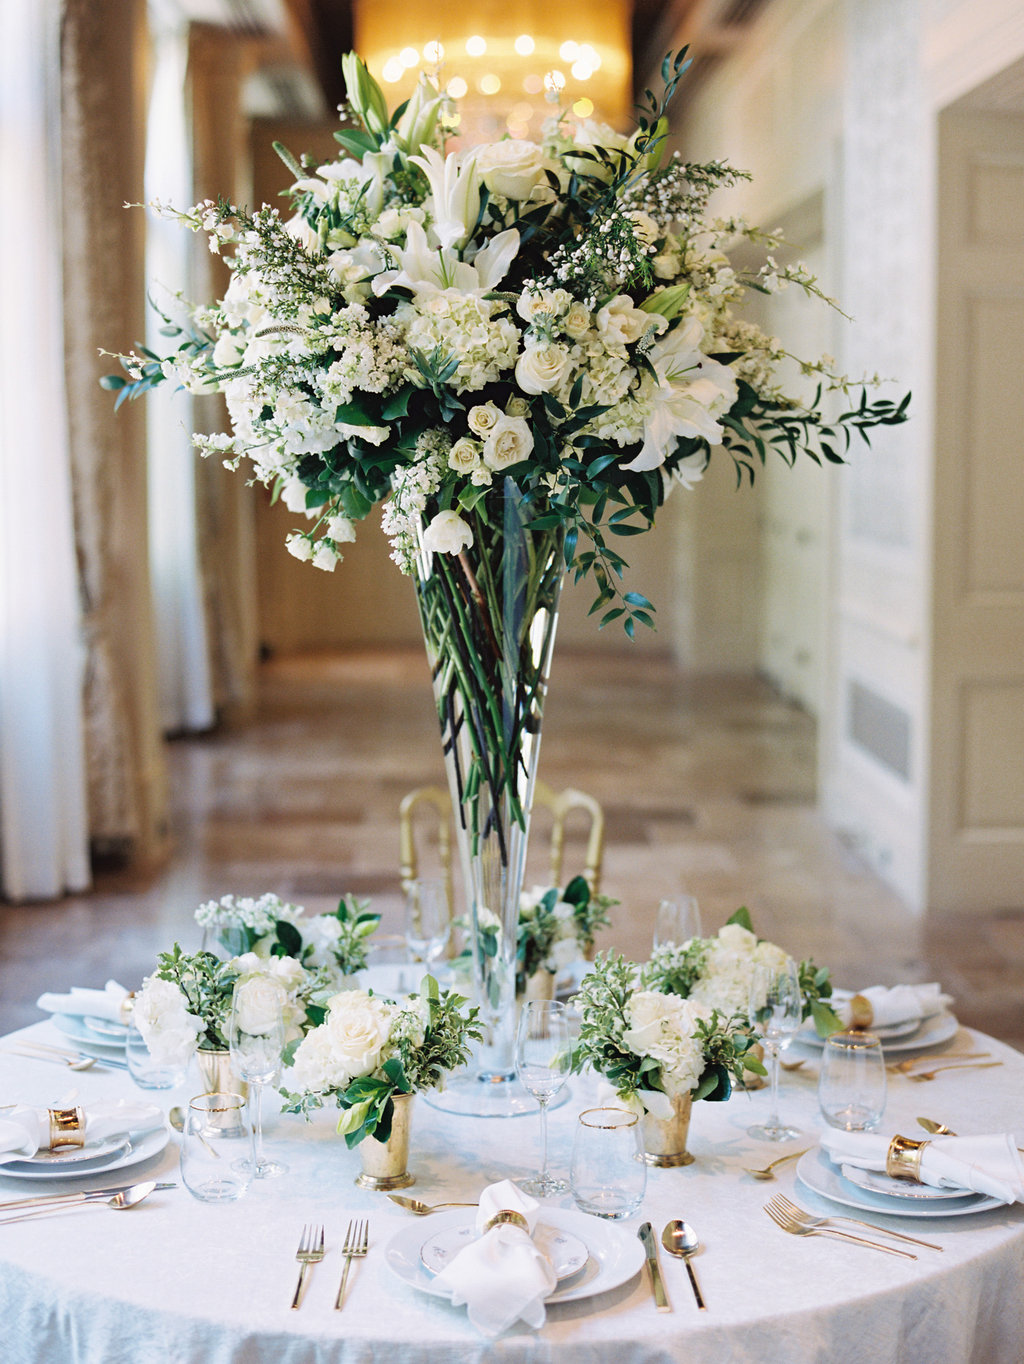 Tall white and green floral arrangement in the middle of a round table with a white table linen set for the wedding reception